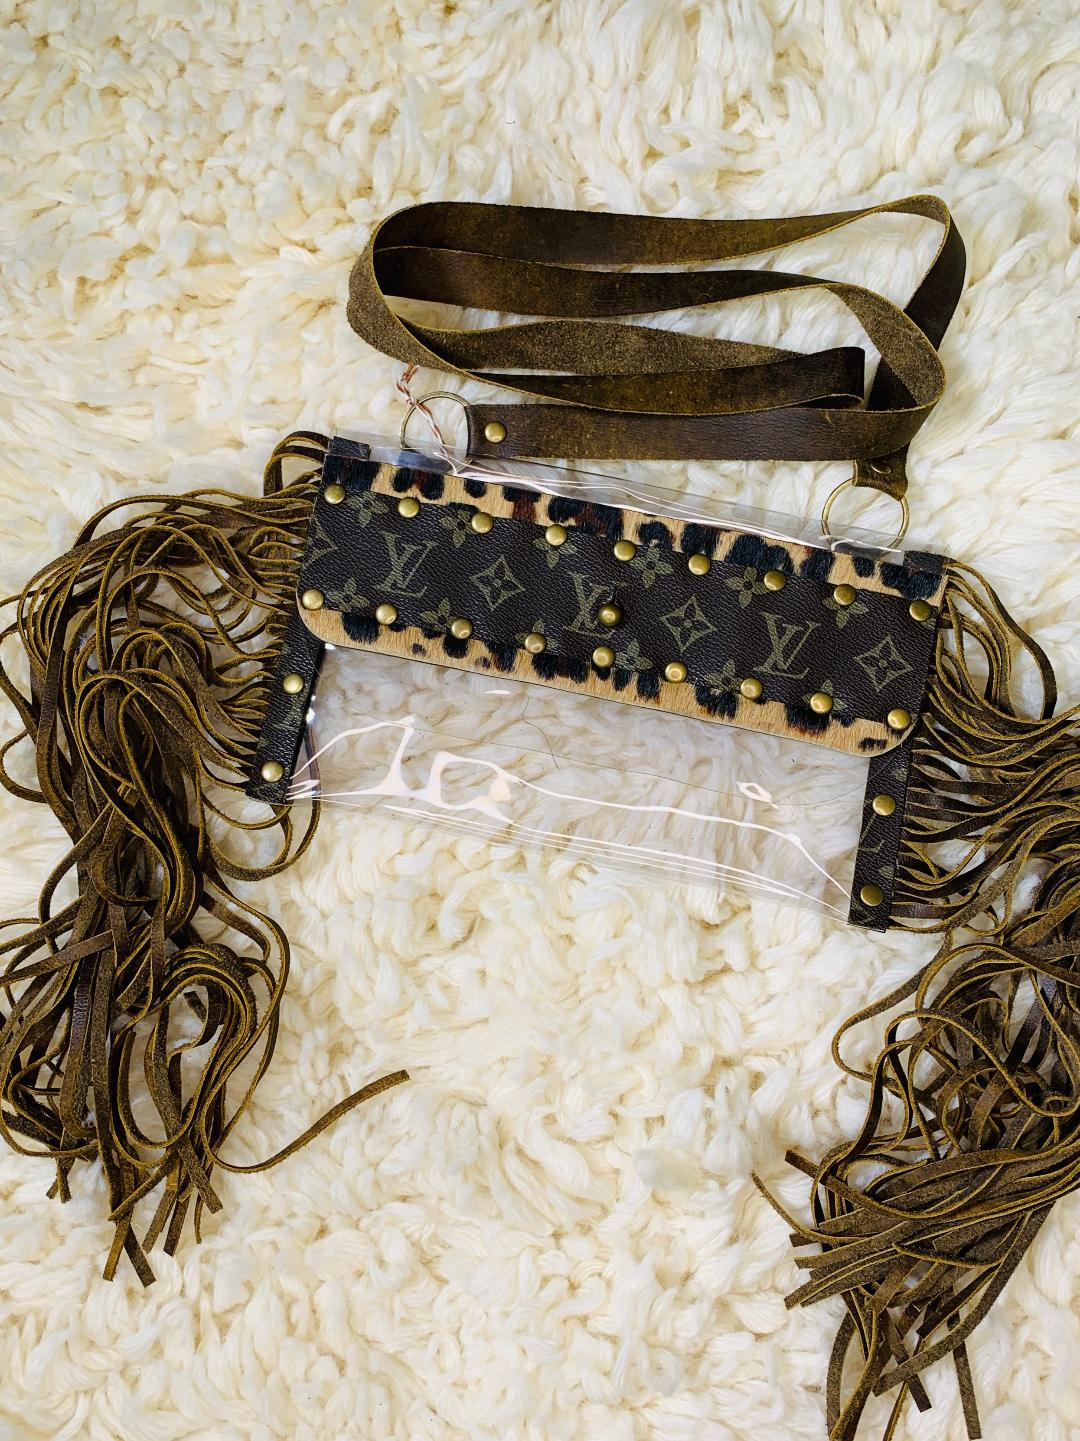 Stadium Bag: Keep It Gypsy Embellished Cross Body Purse